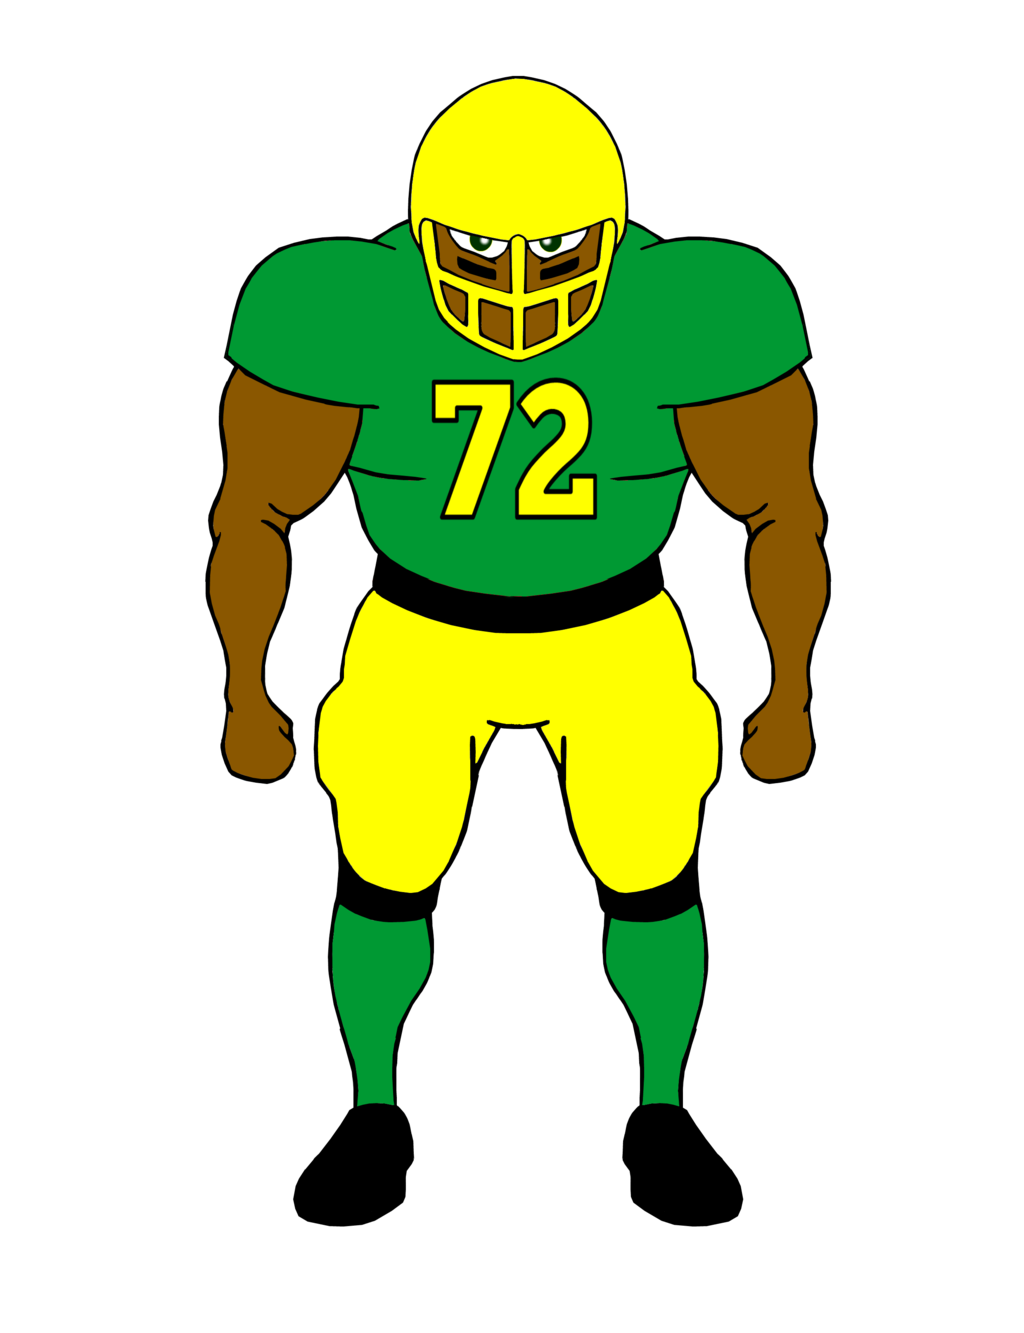 Football player clip art free clipart images image 2